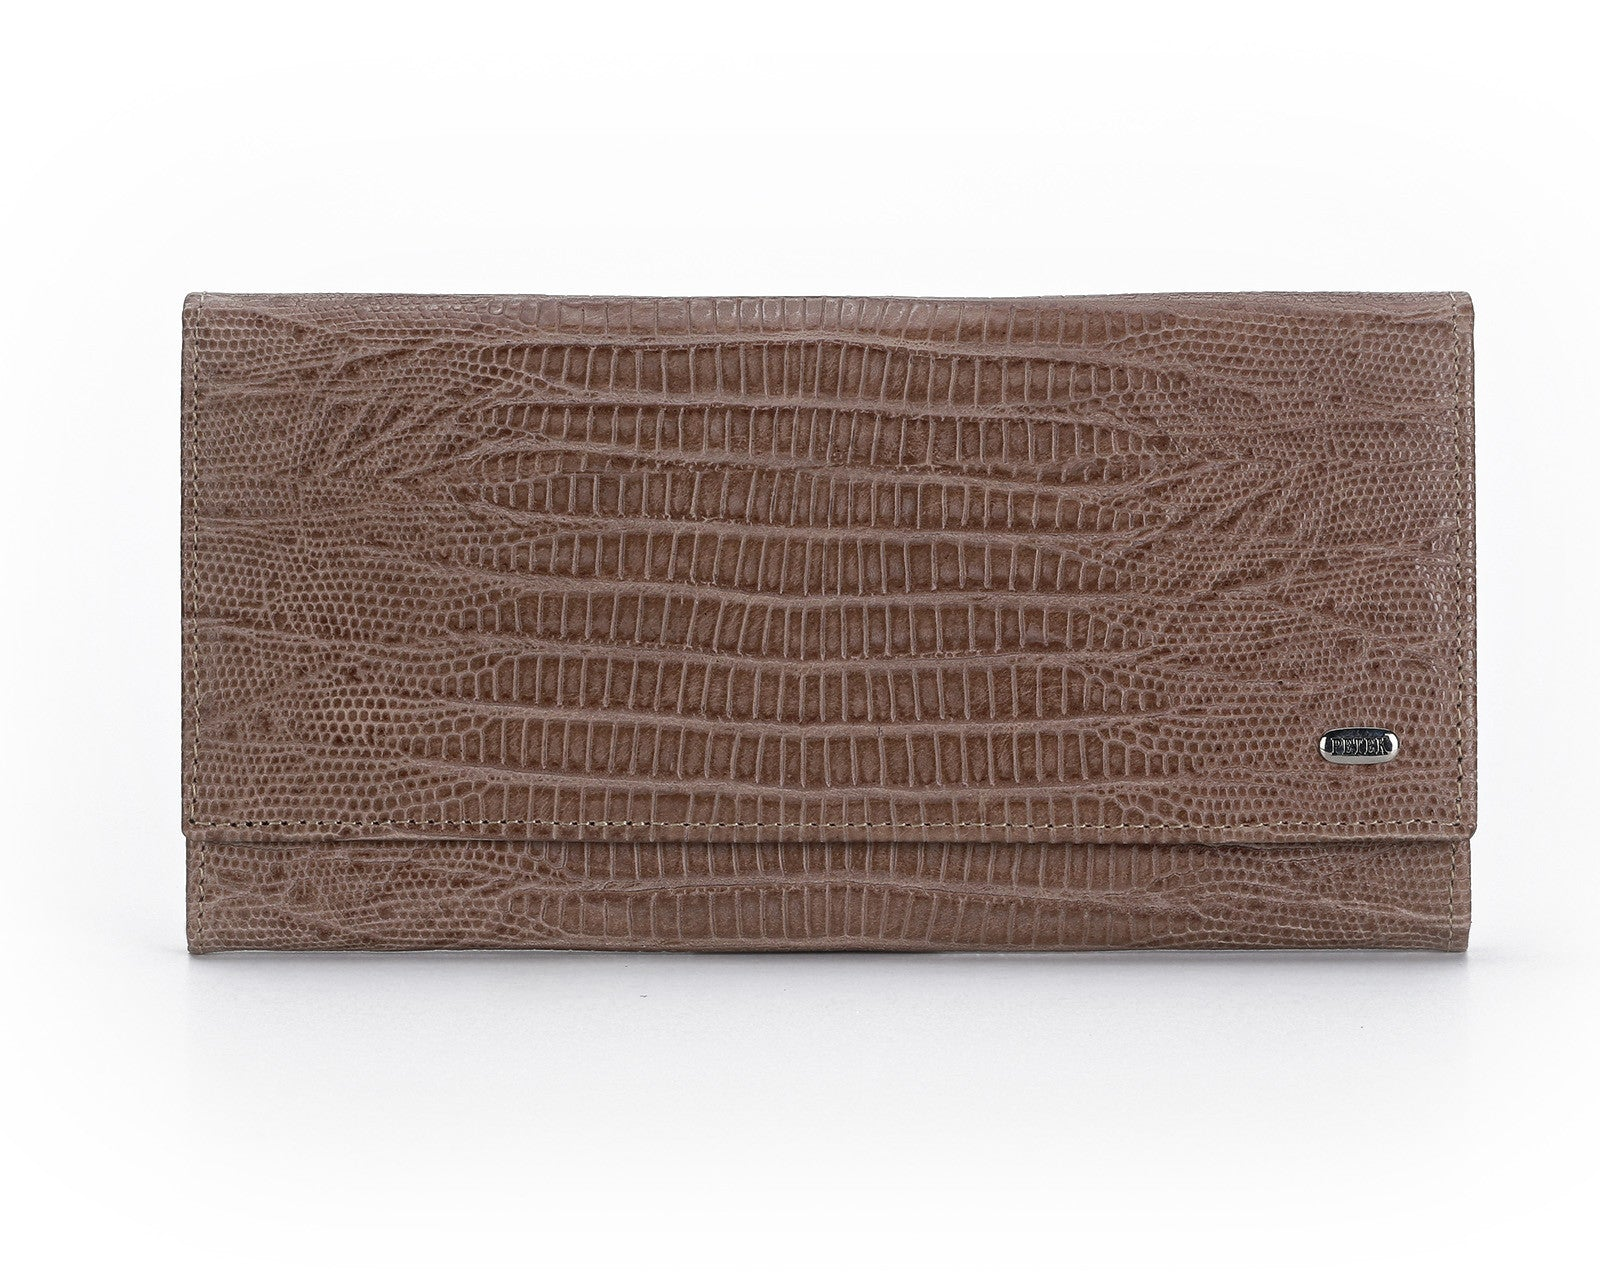 379 Crocodile Somon, Petek 1855 Women's Leather Wallet